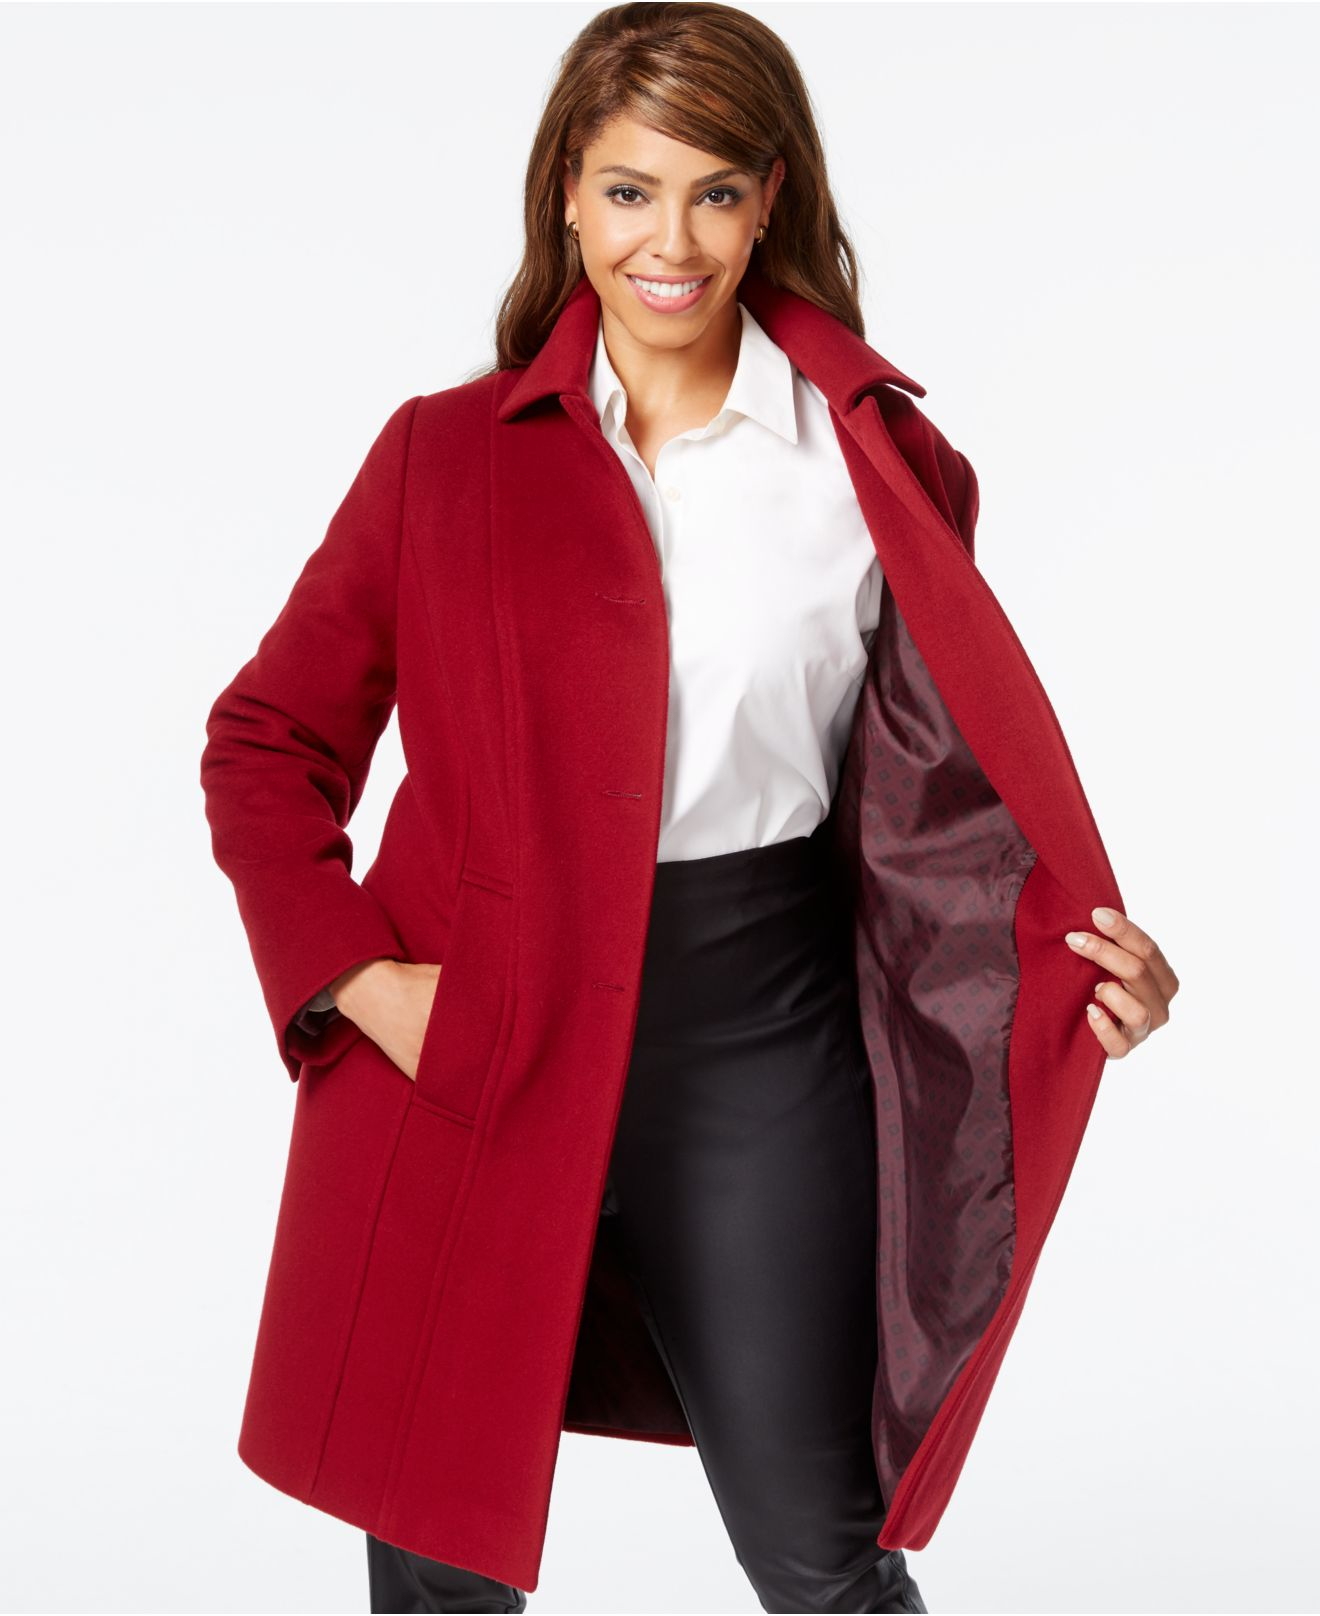 Coats & Jackets. Transition into fall and winter by discovering our stunning collection of women's plus sized coats and jackets. Whether you're after plus sized leather and faux fur coats for that extra warmth or blazers, capes and ponchos for something different, or want to add a tough edge with biker jackets, you'll be able to find everything you need to brave the changeable weather, while.